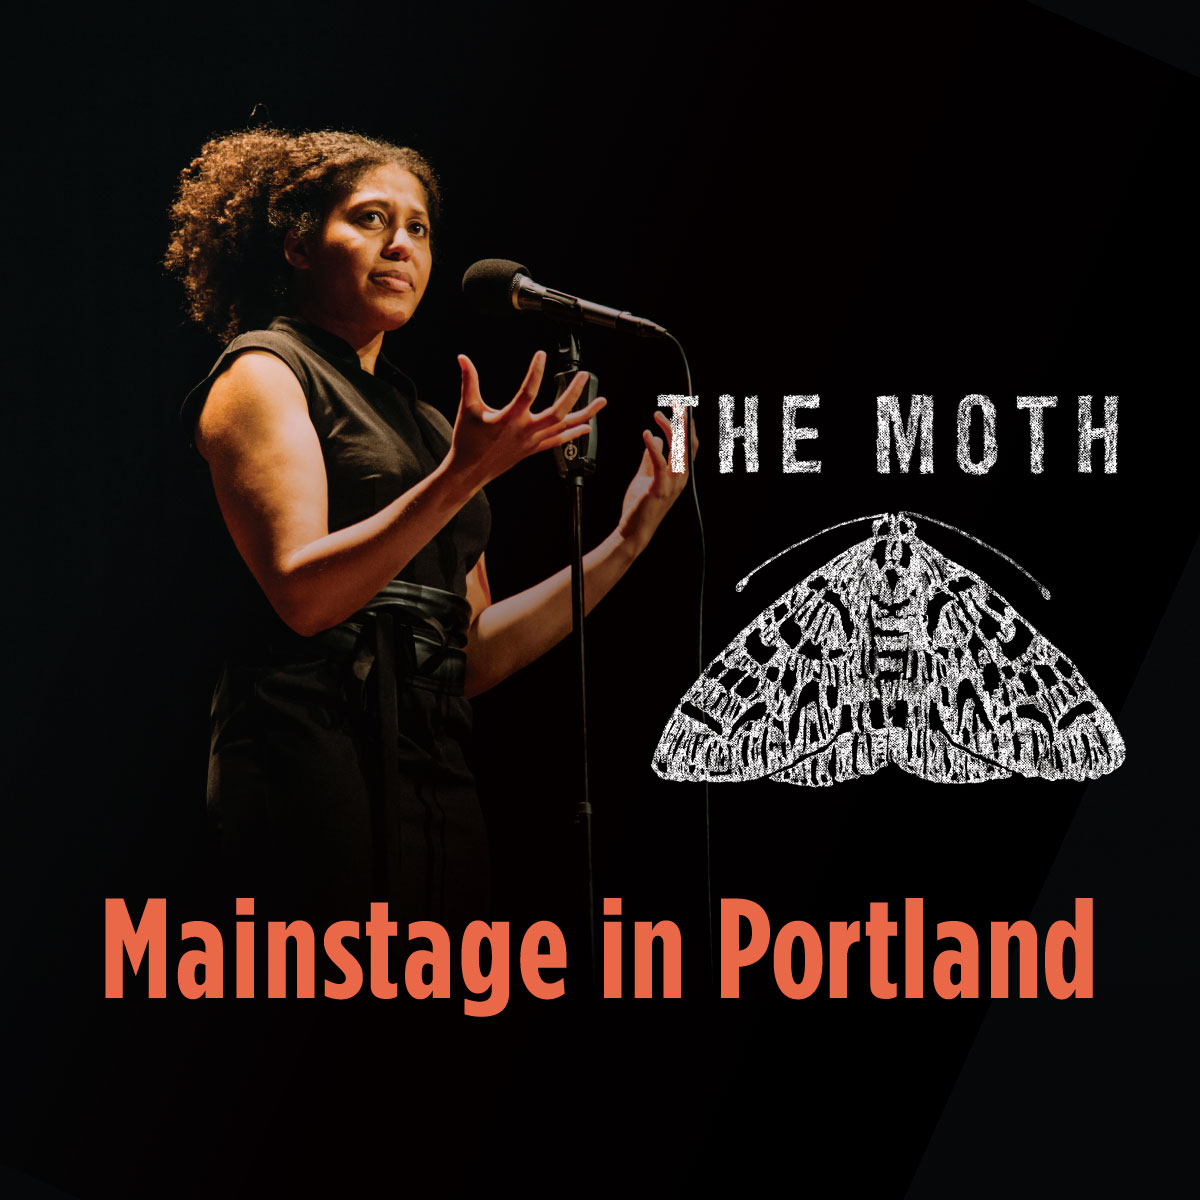 The Moth Mainstage in Portland